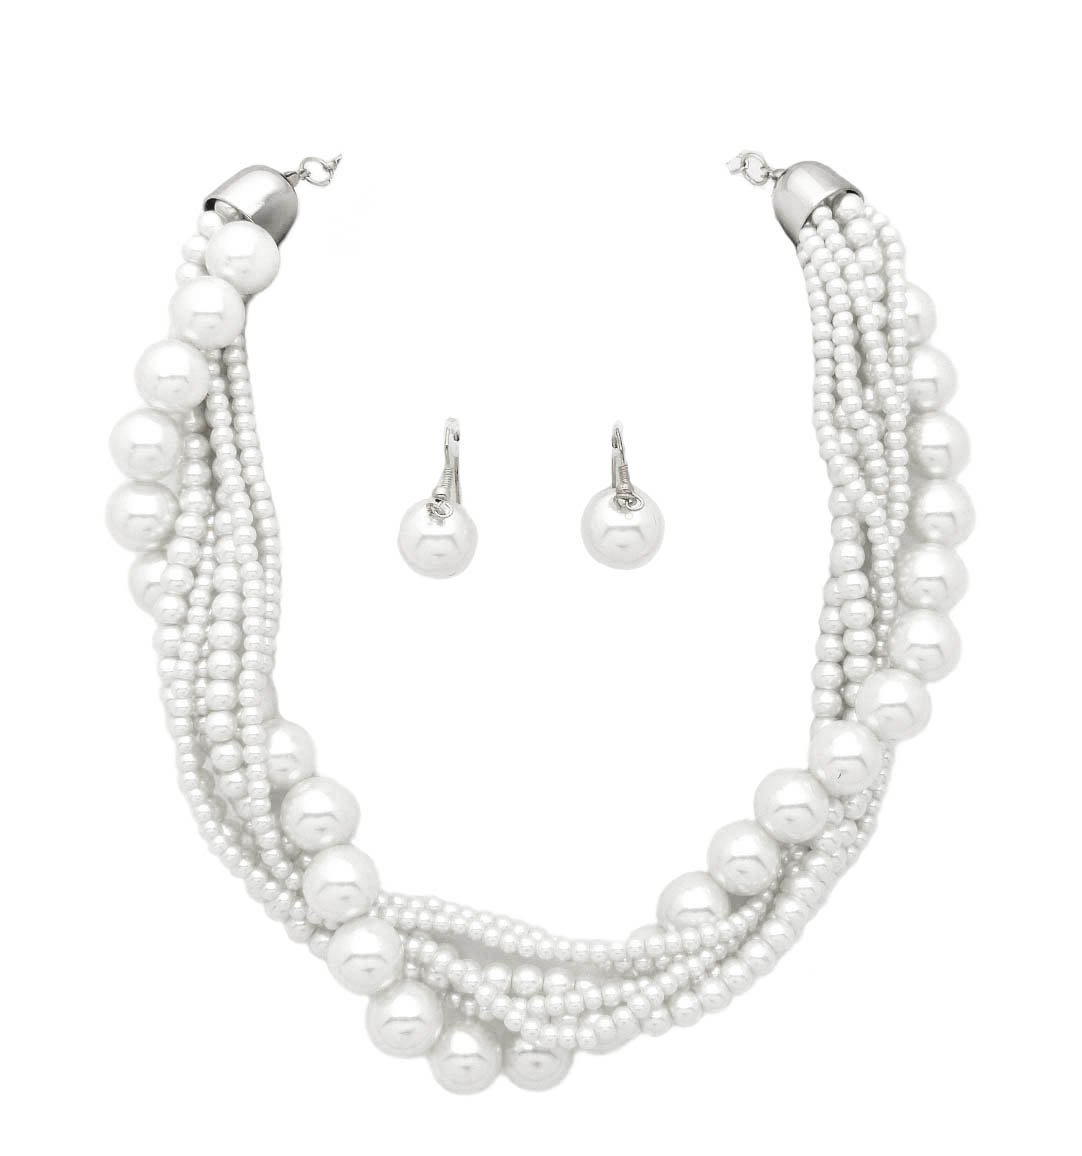 Fashion 21 Women's Twisted Multi-Strand Simulated Pearl, Acrylic Ball Statement Necklace Earrings Set (White)